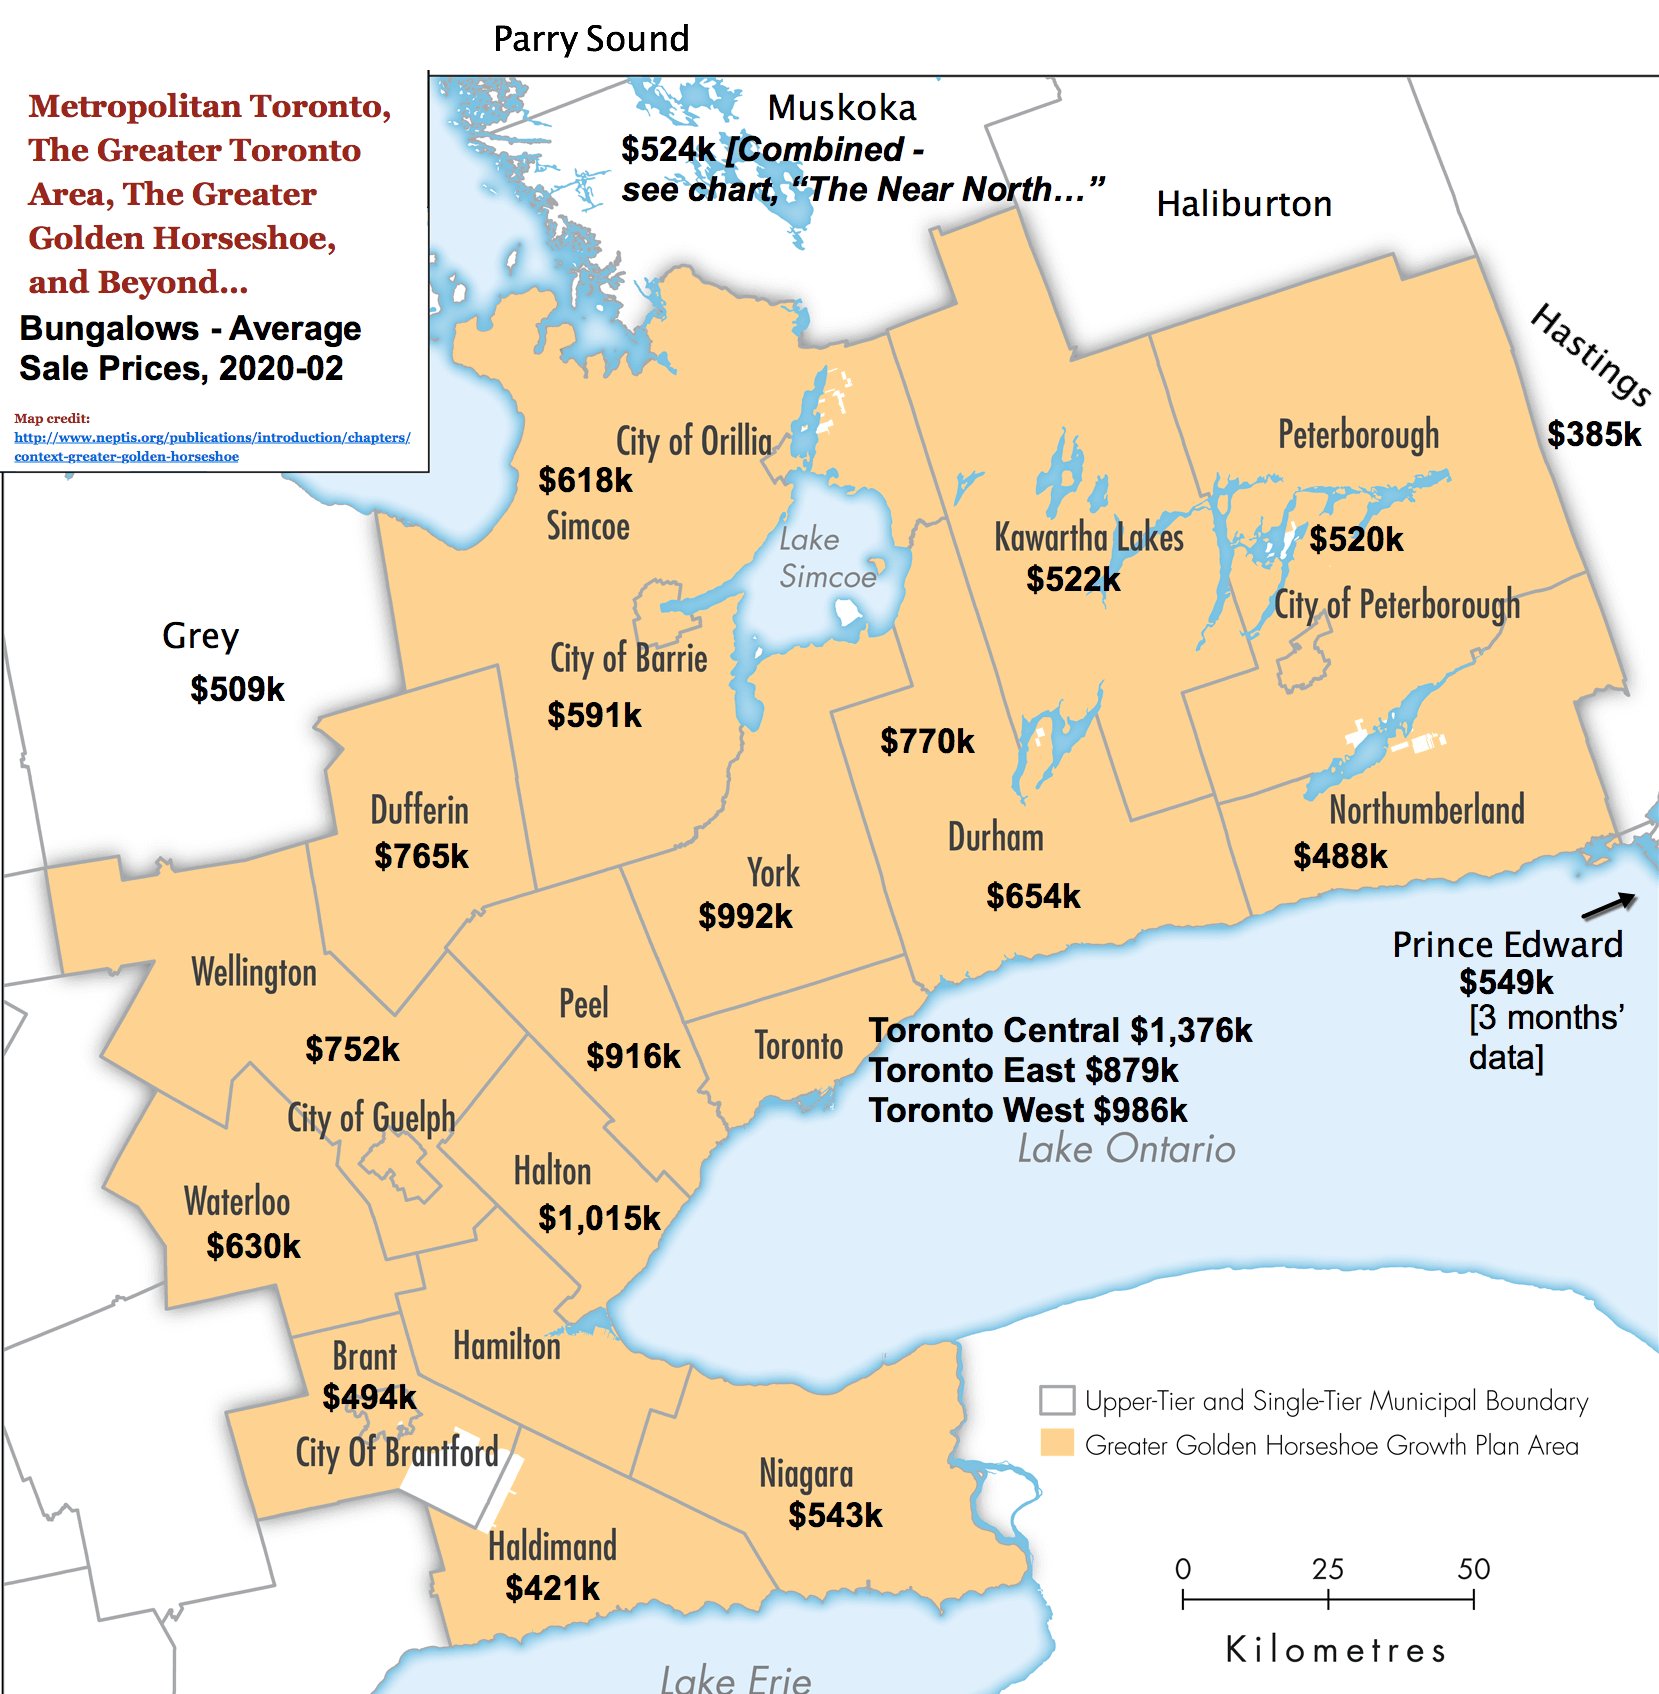 Image: Toronto / GTA / GGH Reference Map with 2020-02 Bungalow Prices & Stats by City / Region